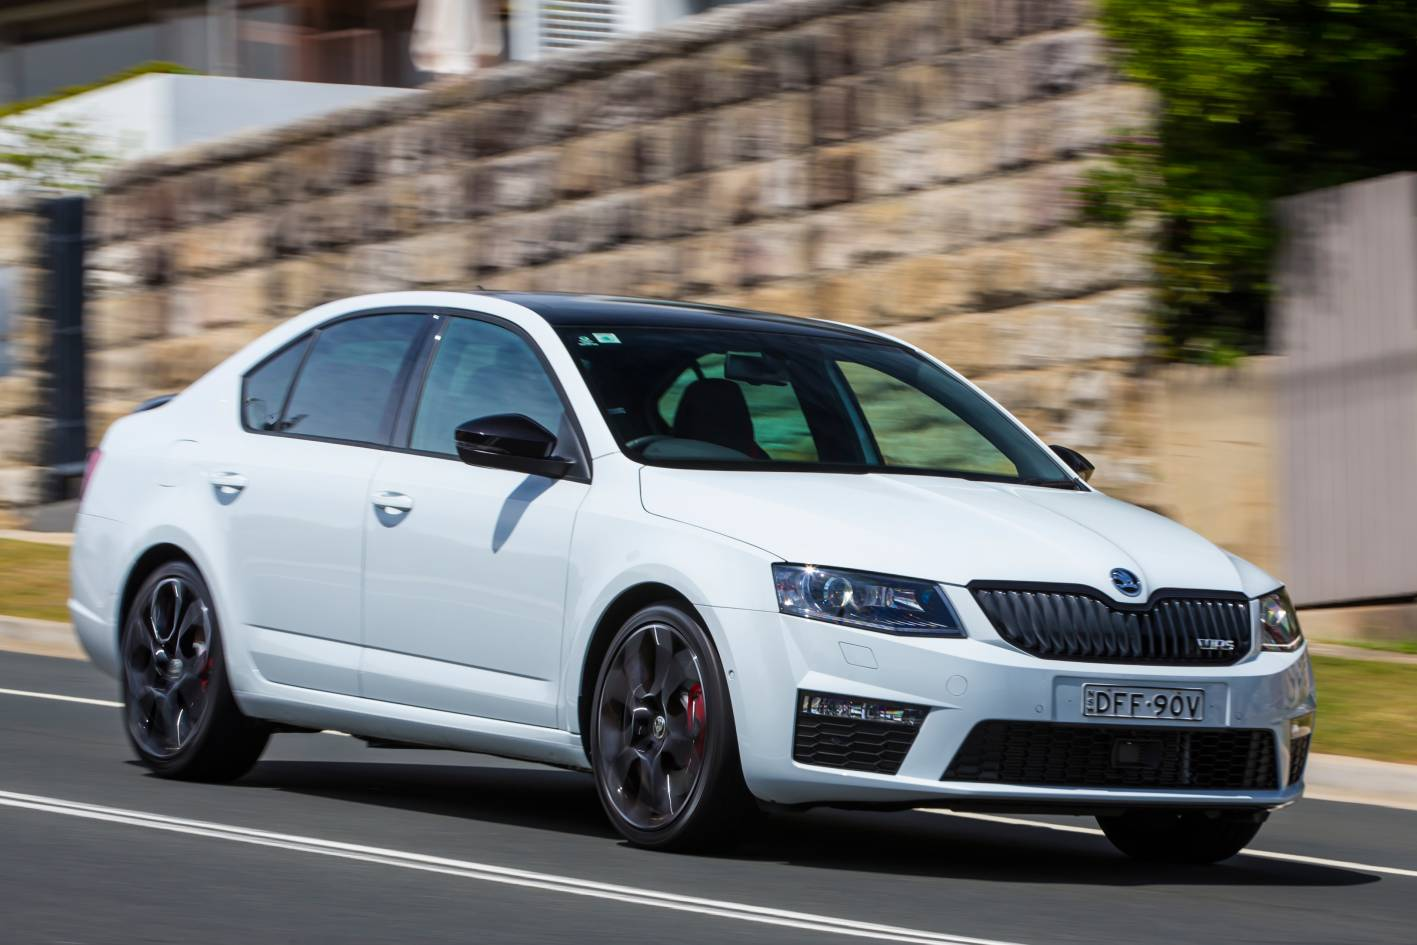 skoda unleashes more powerful octavia rs 230 in australia. Black Bedroom Furniture Sets. Home Design Ideas